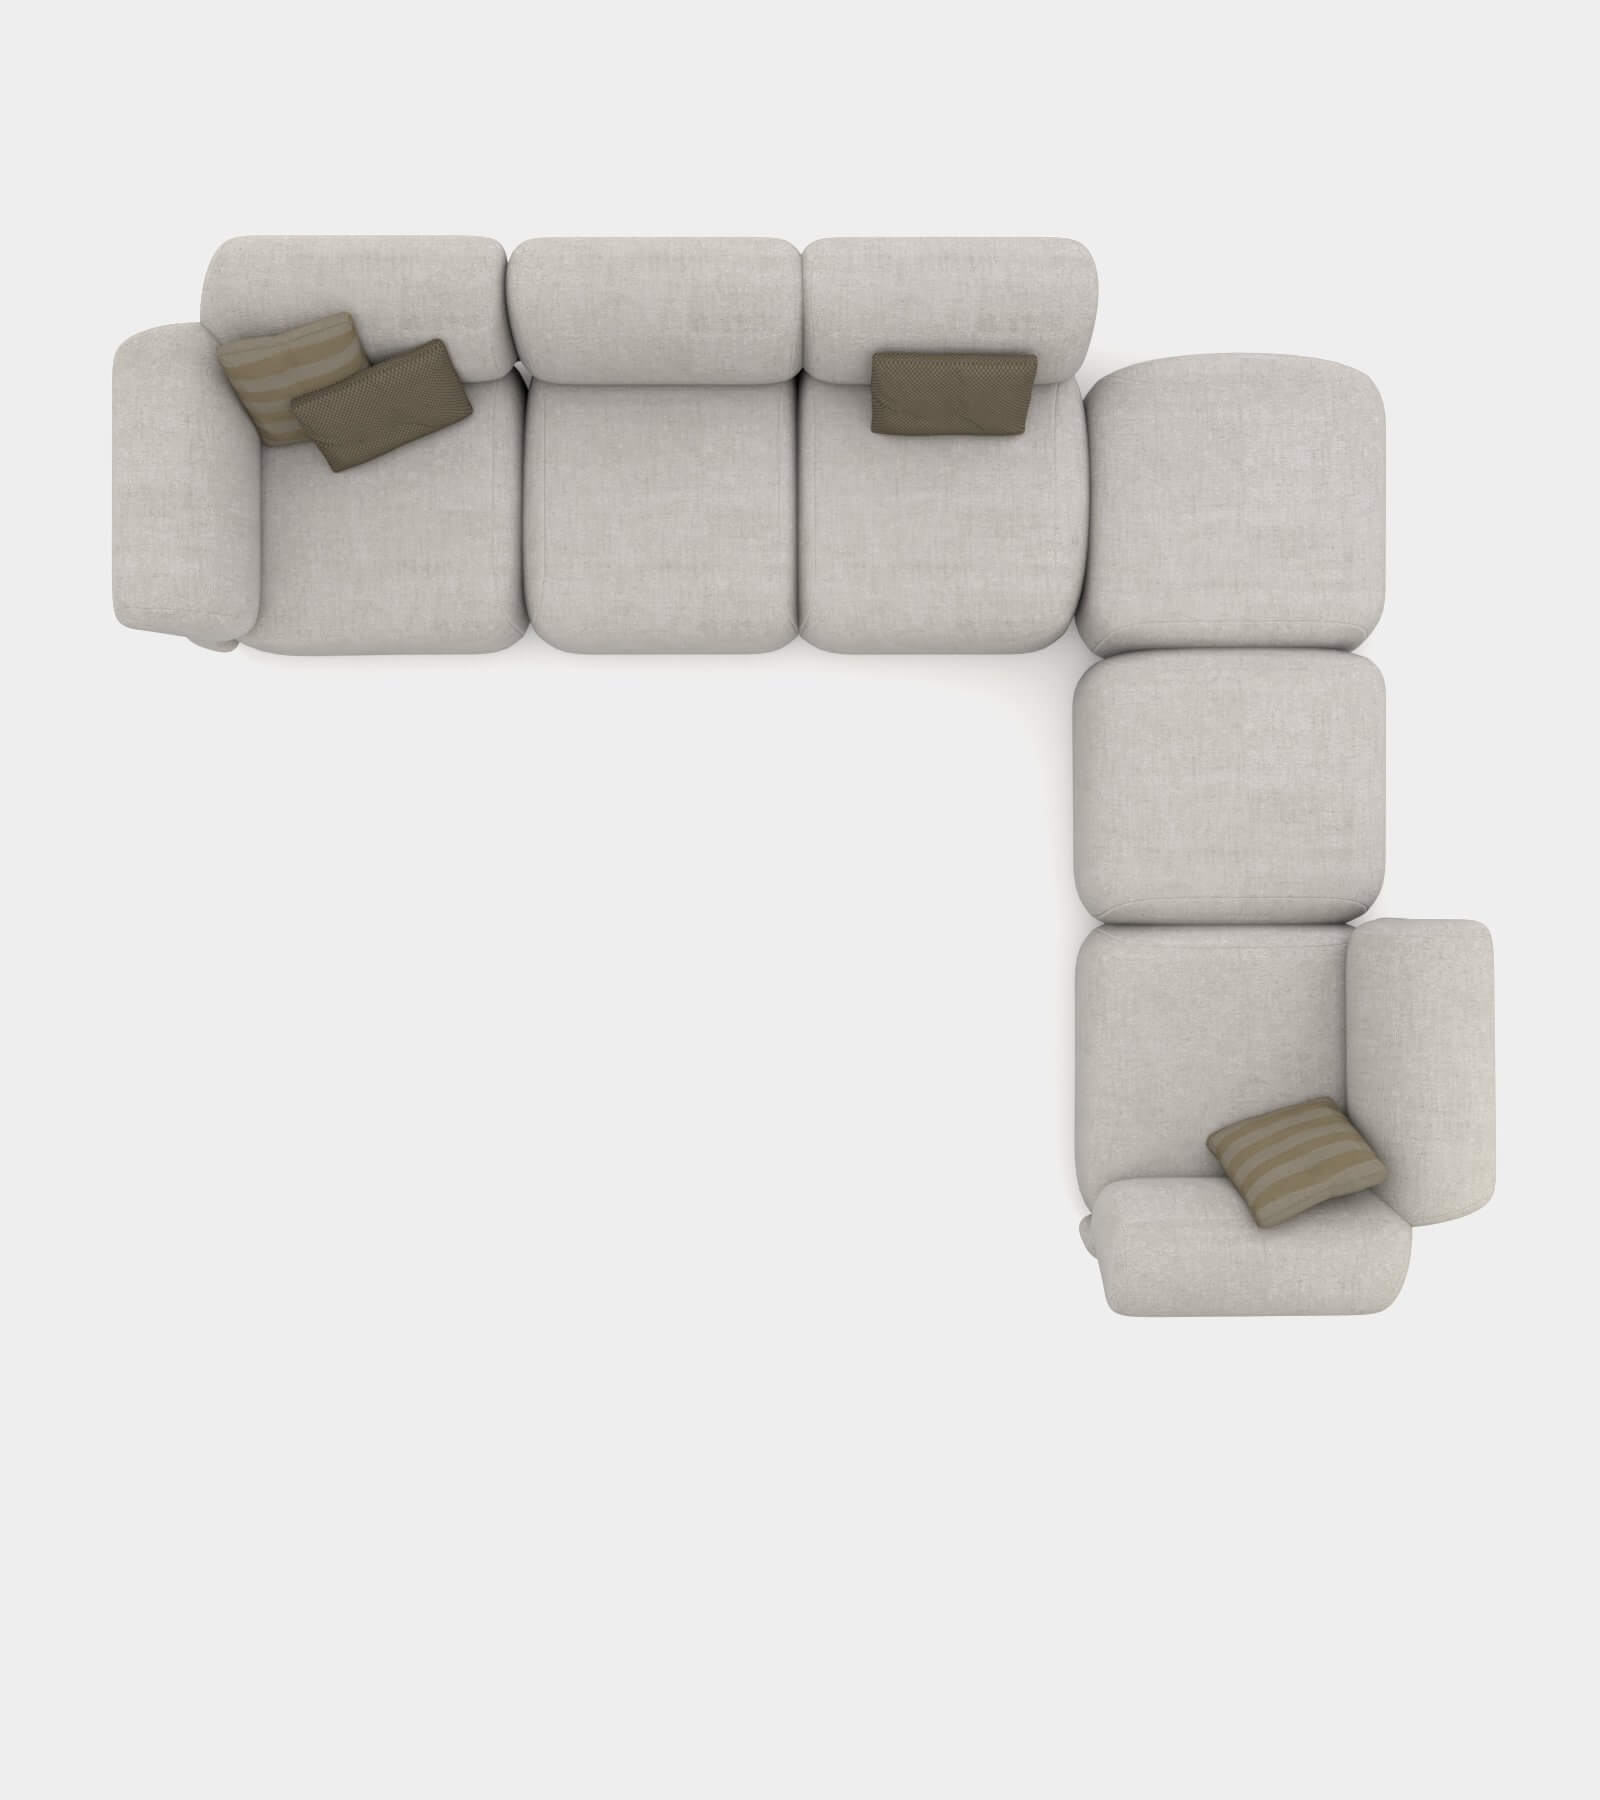 Cozy sofa with round shapes 2 - 3D Model